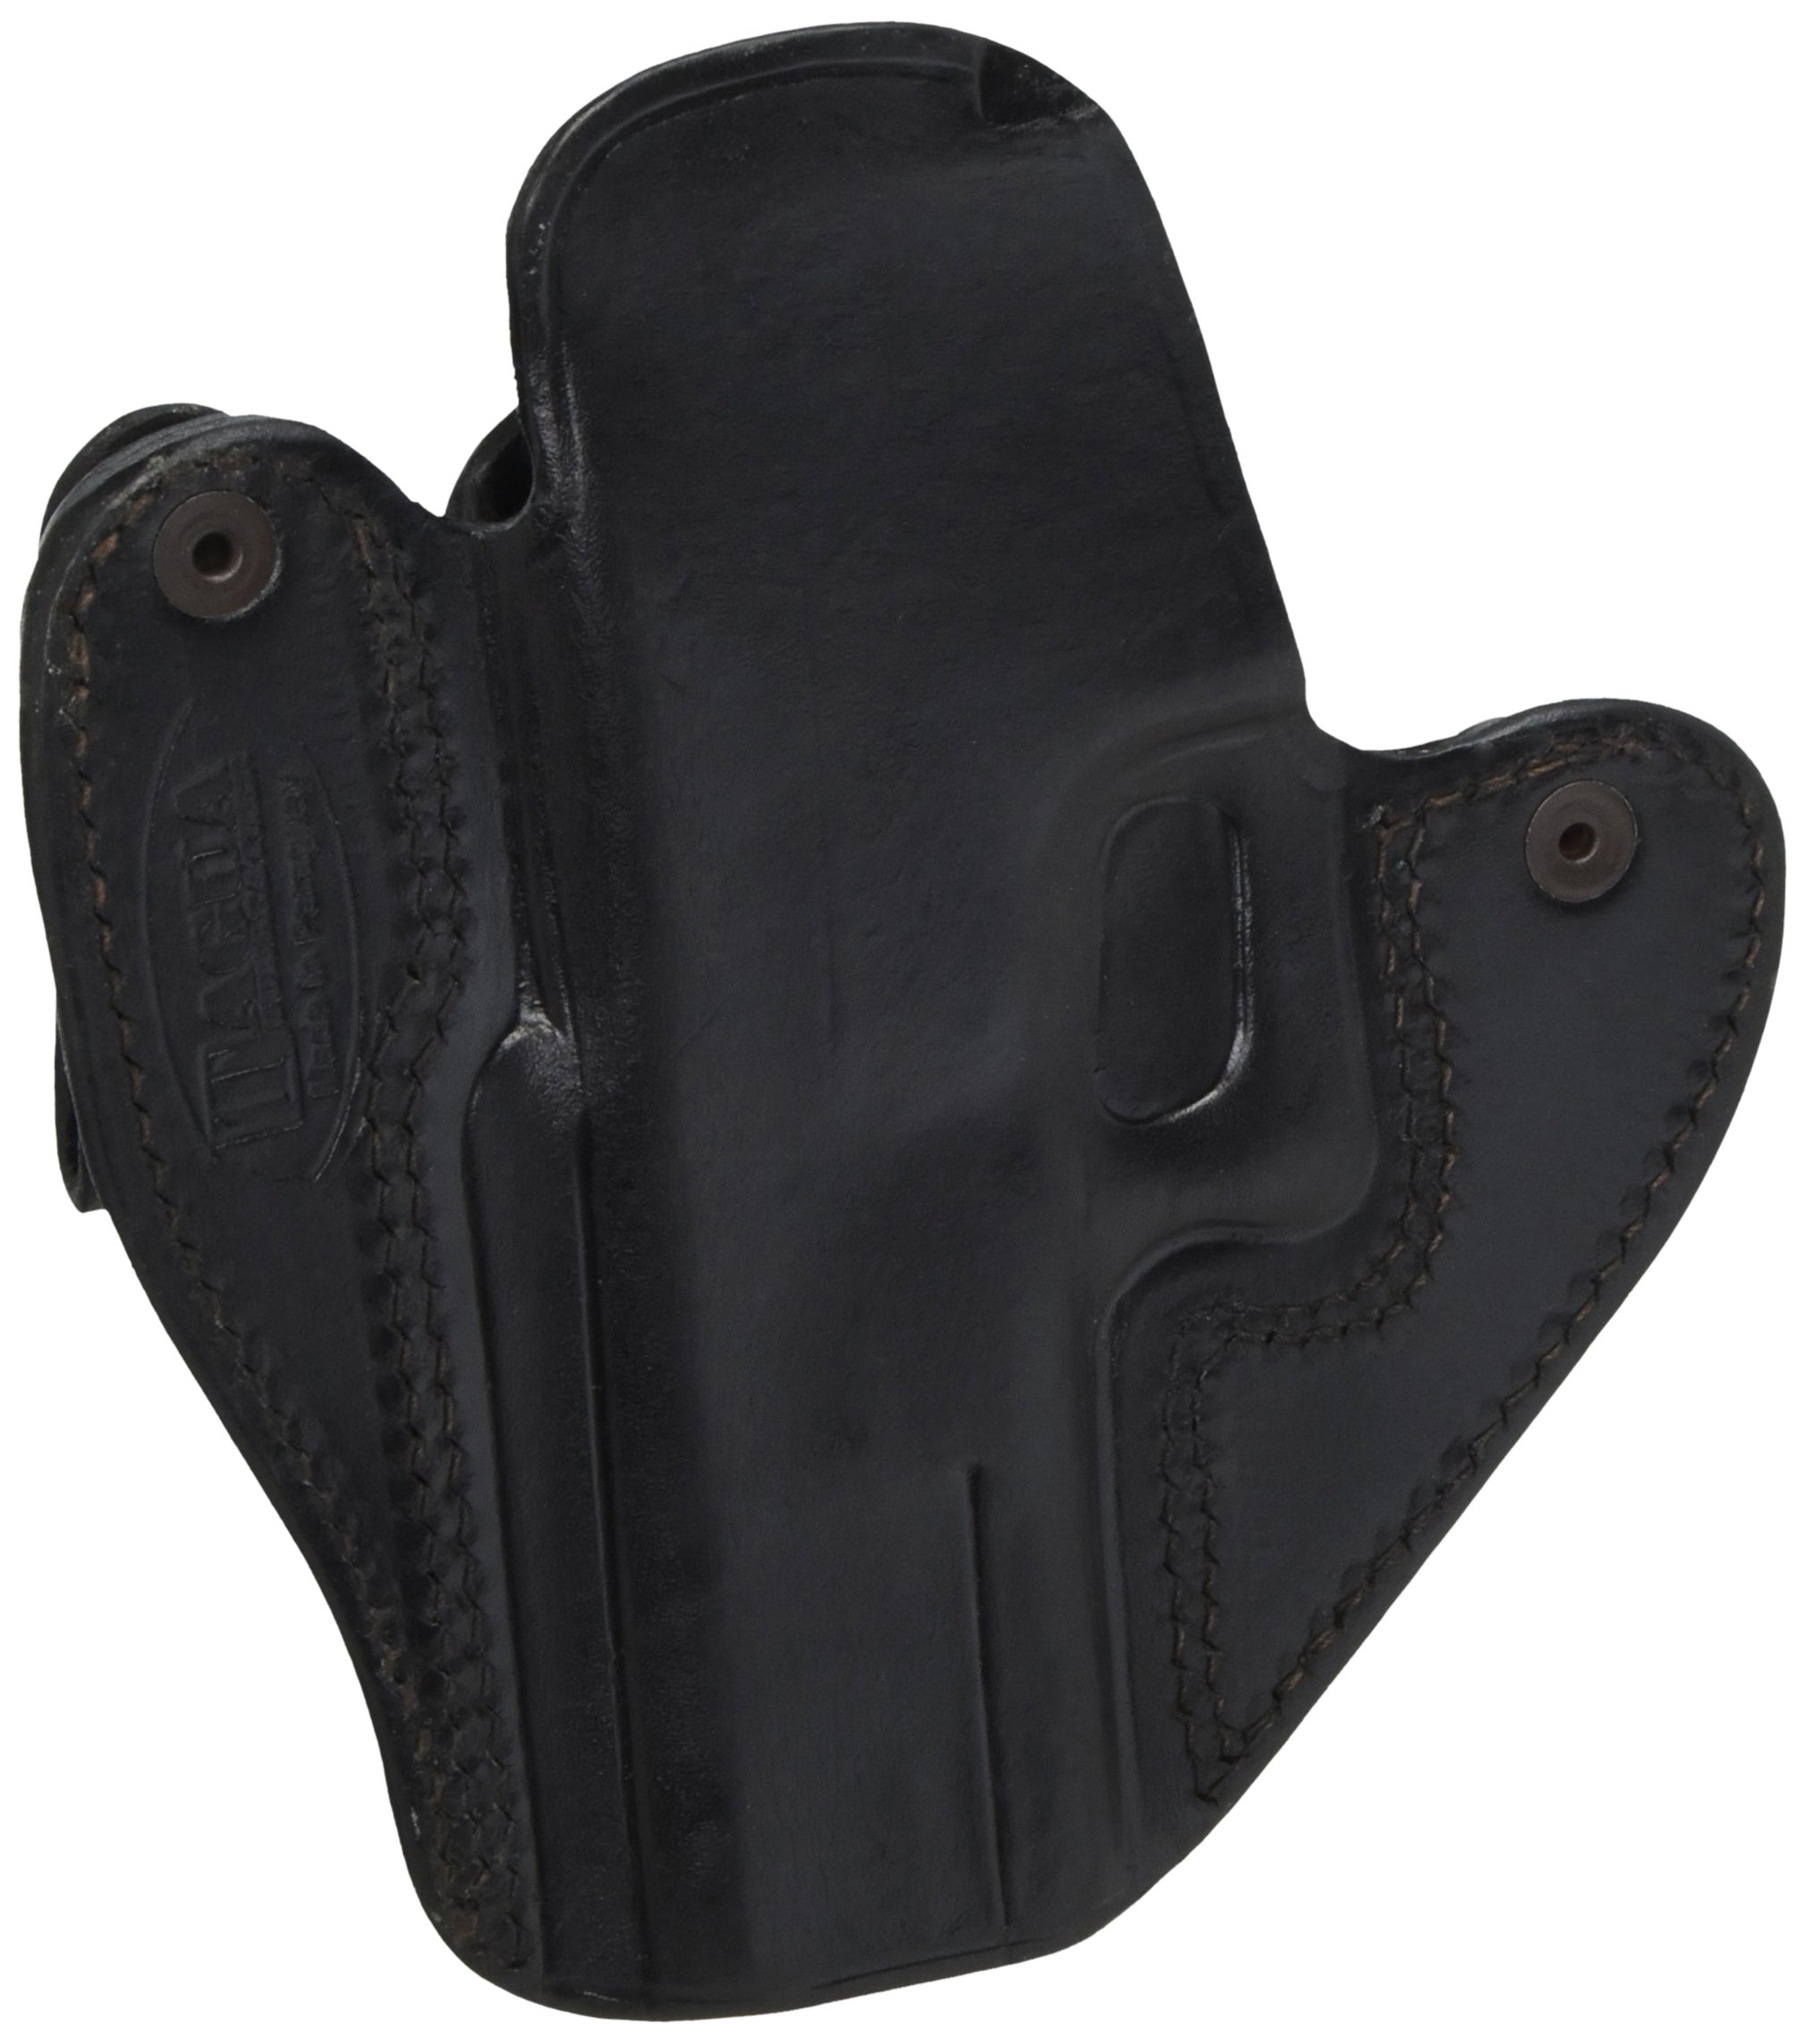 Tagua DSH-320 Glock 21 Dual Snap Holster, Black, Right Hand